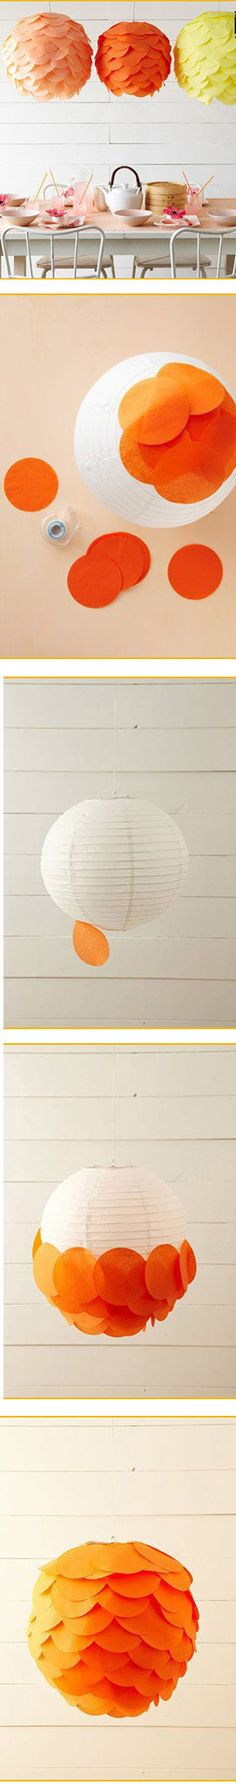 Idea : Decorated Lantern @Erin Conner Maginn - RECRUITMENT IDEAS?!